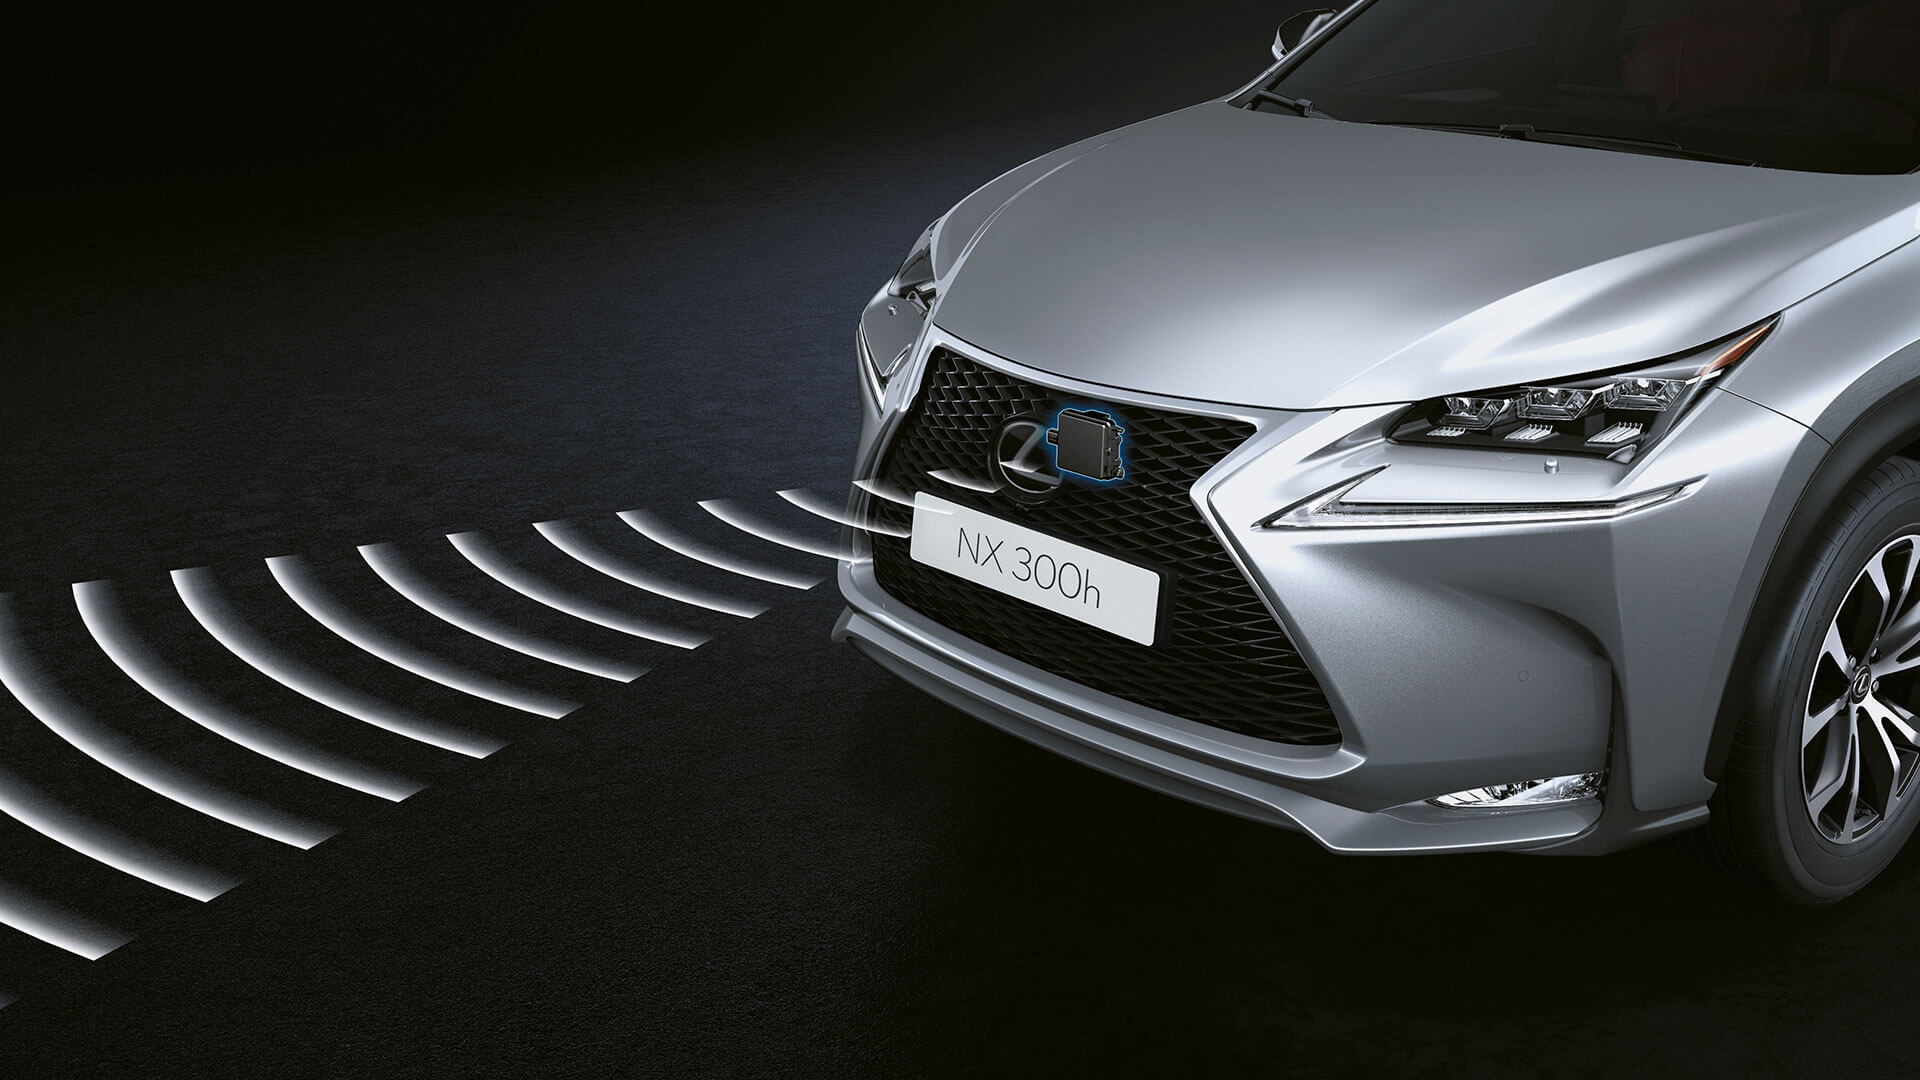 2017 lexus nx 300h features pre crash safety